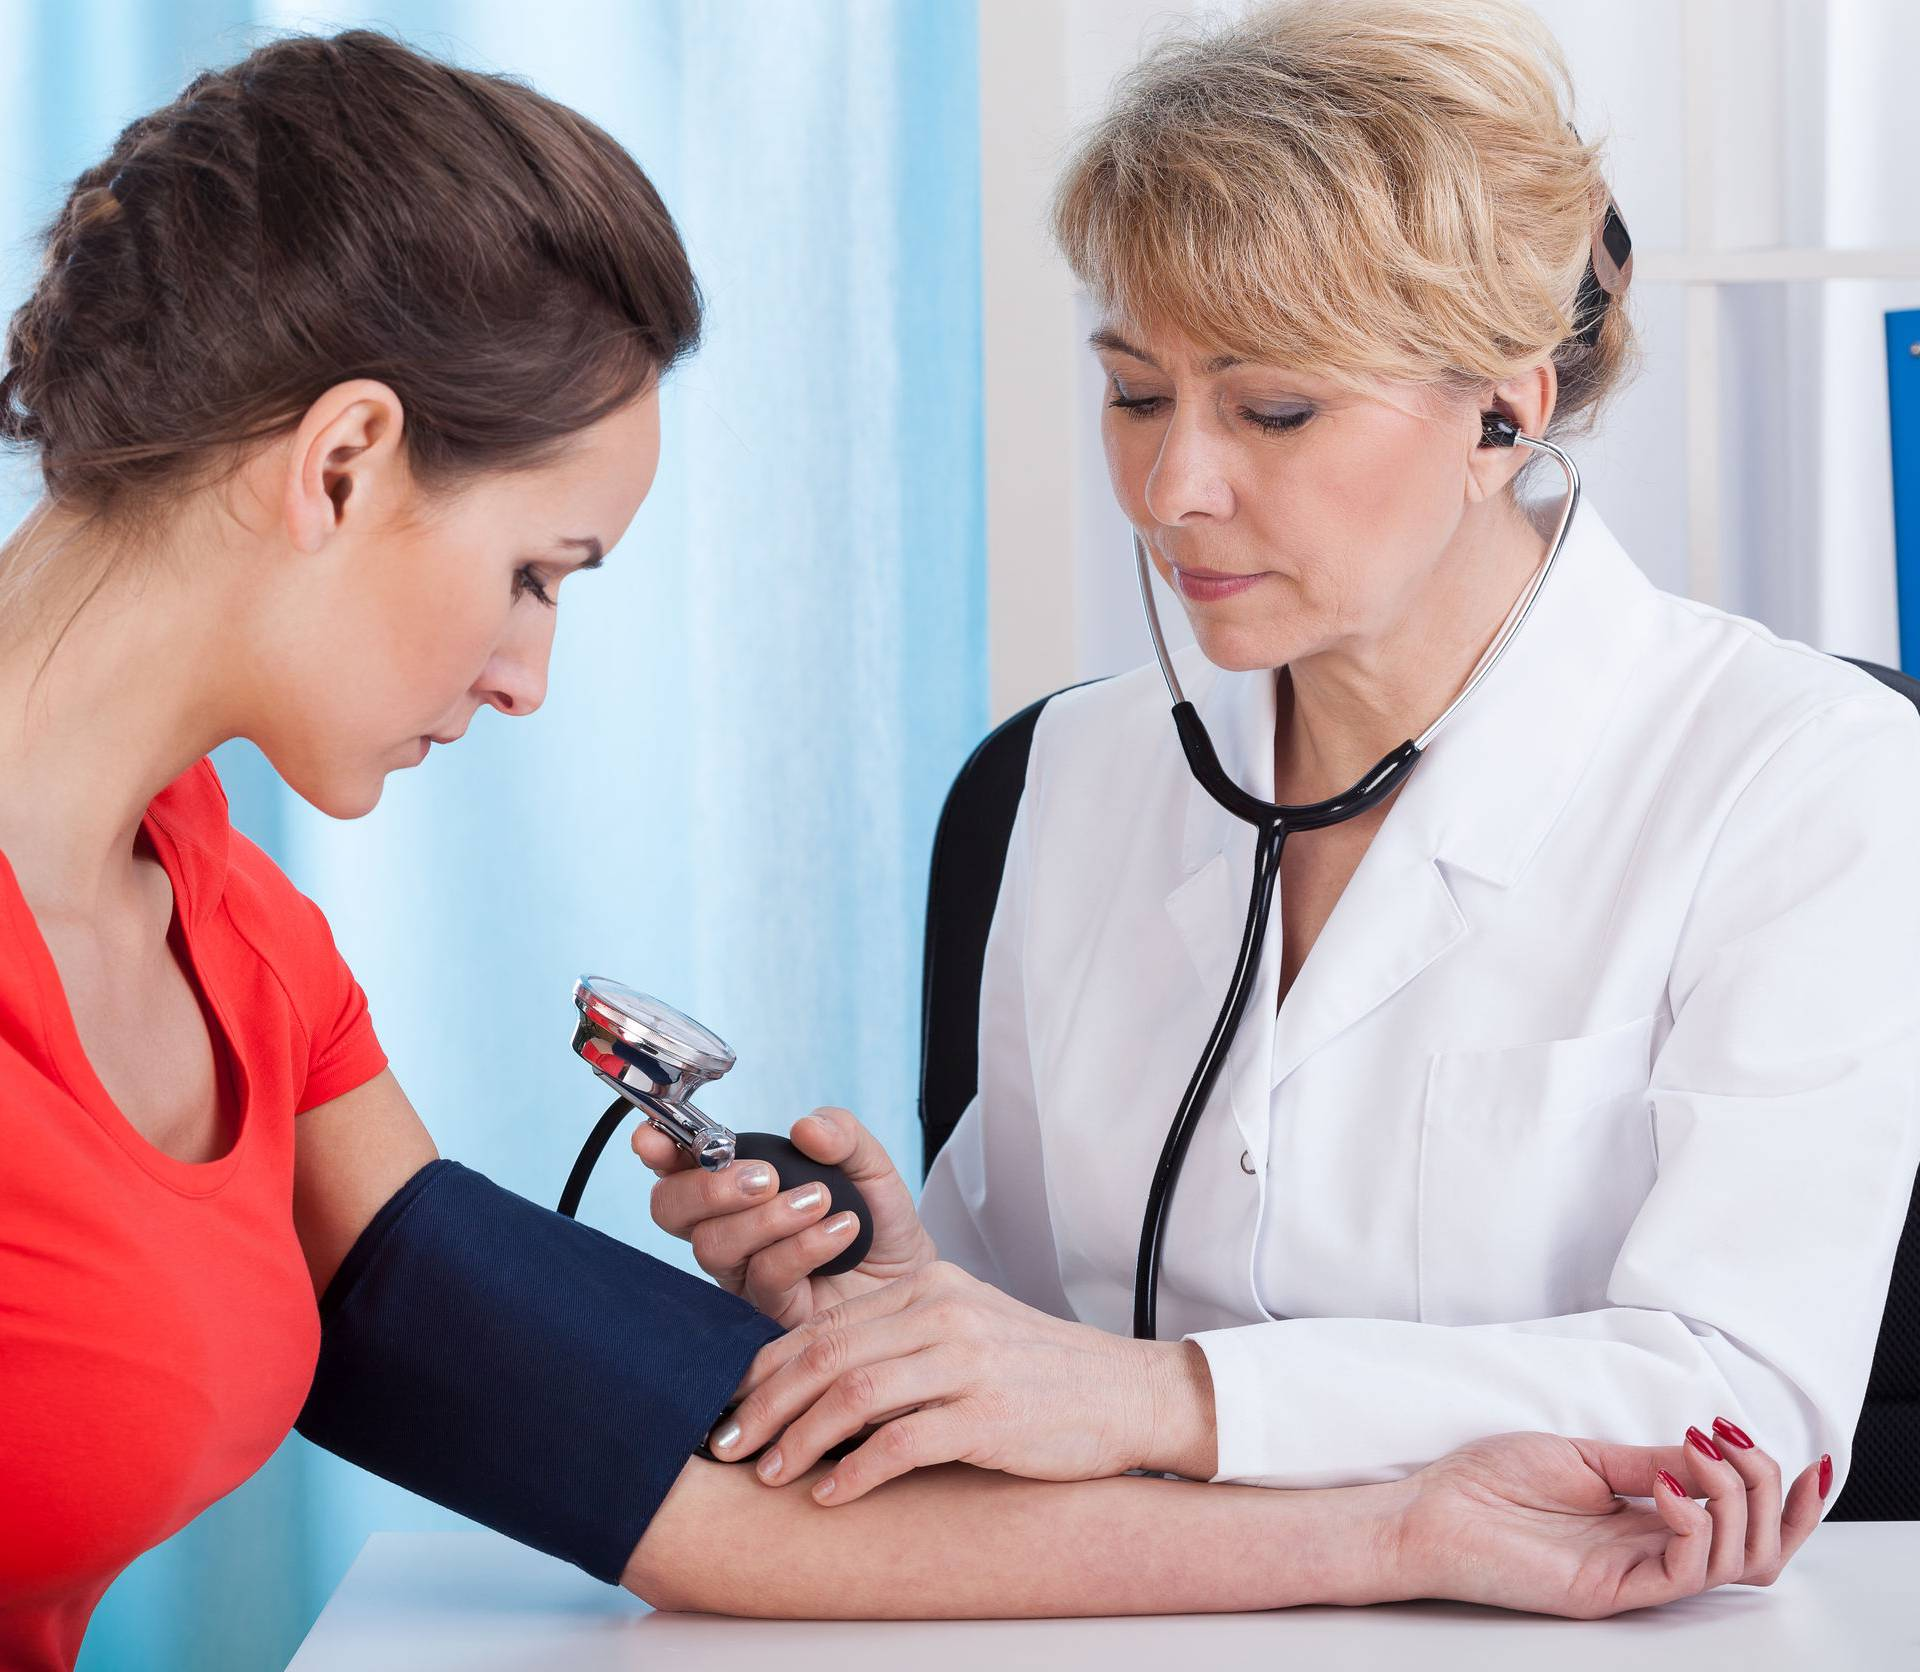 Taking blood pressure of female patient